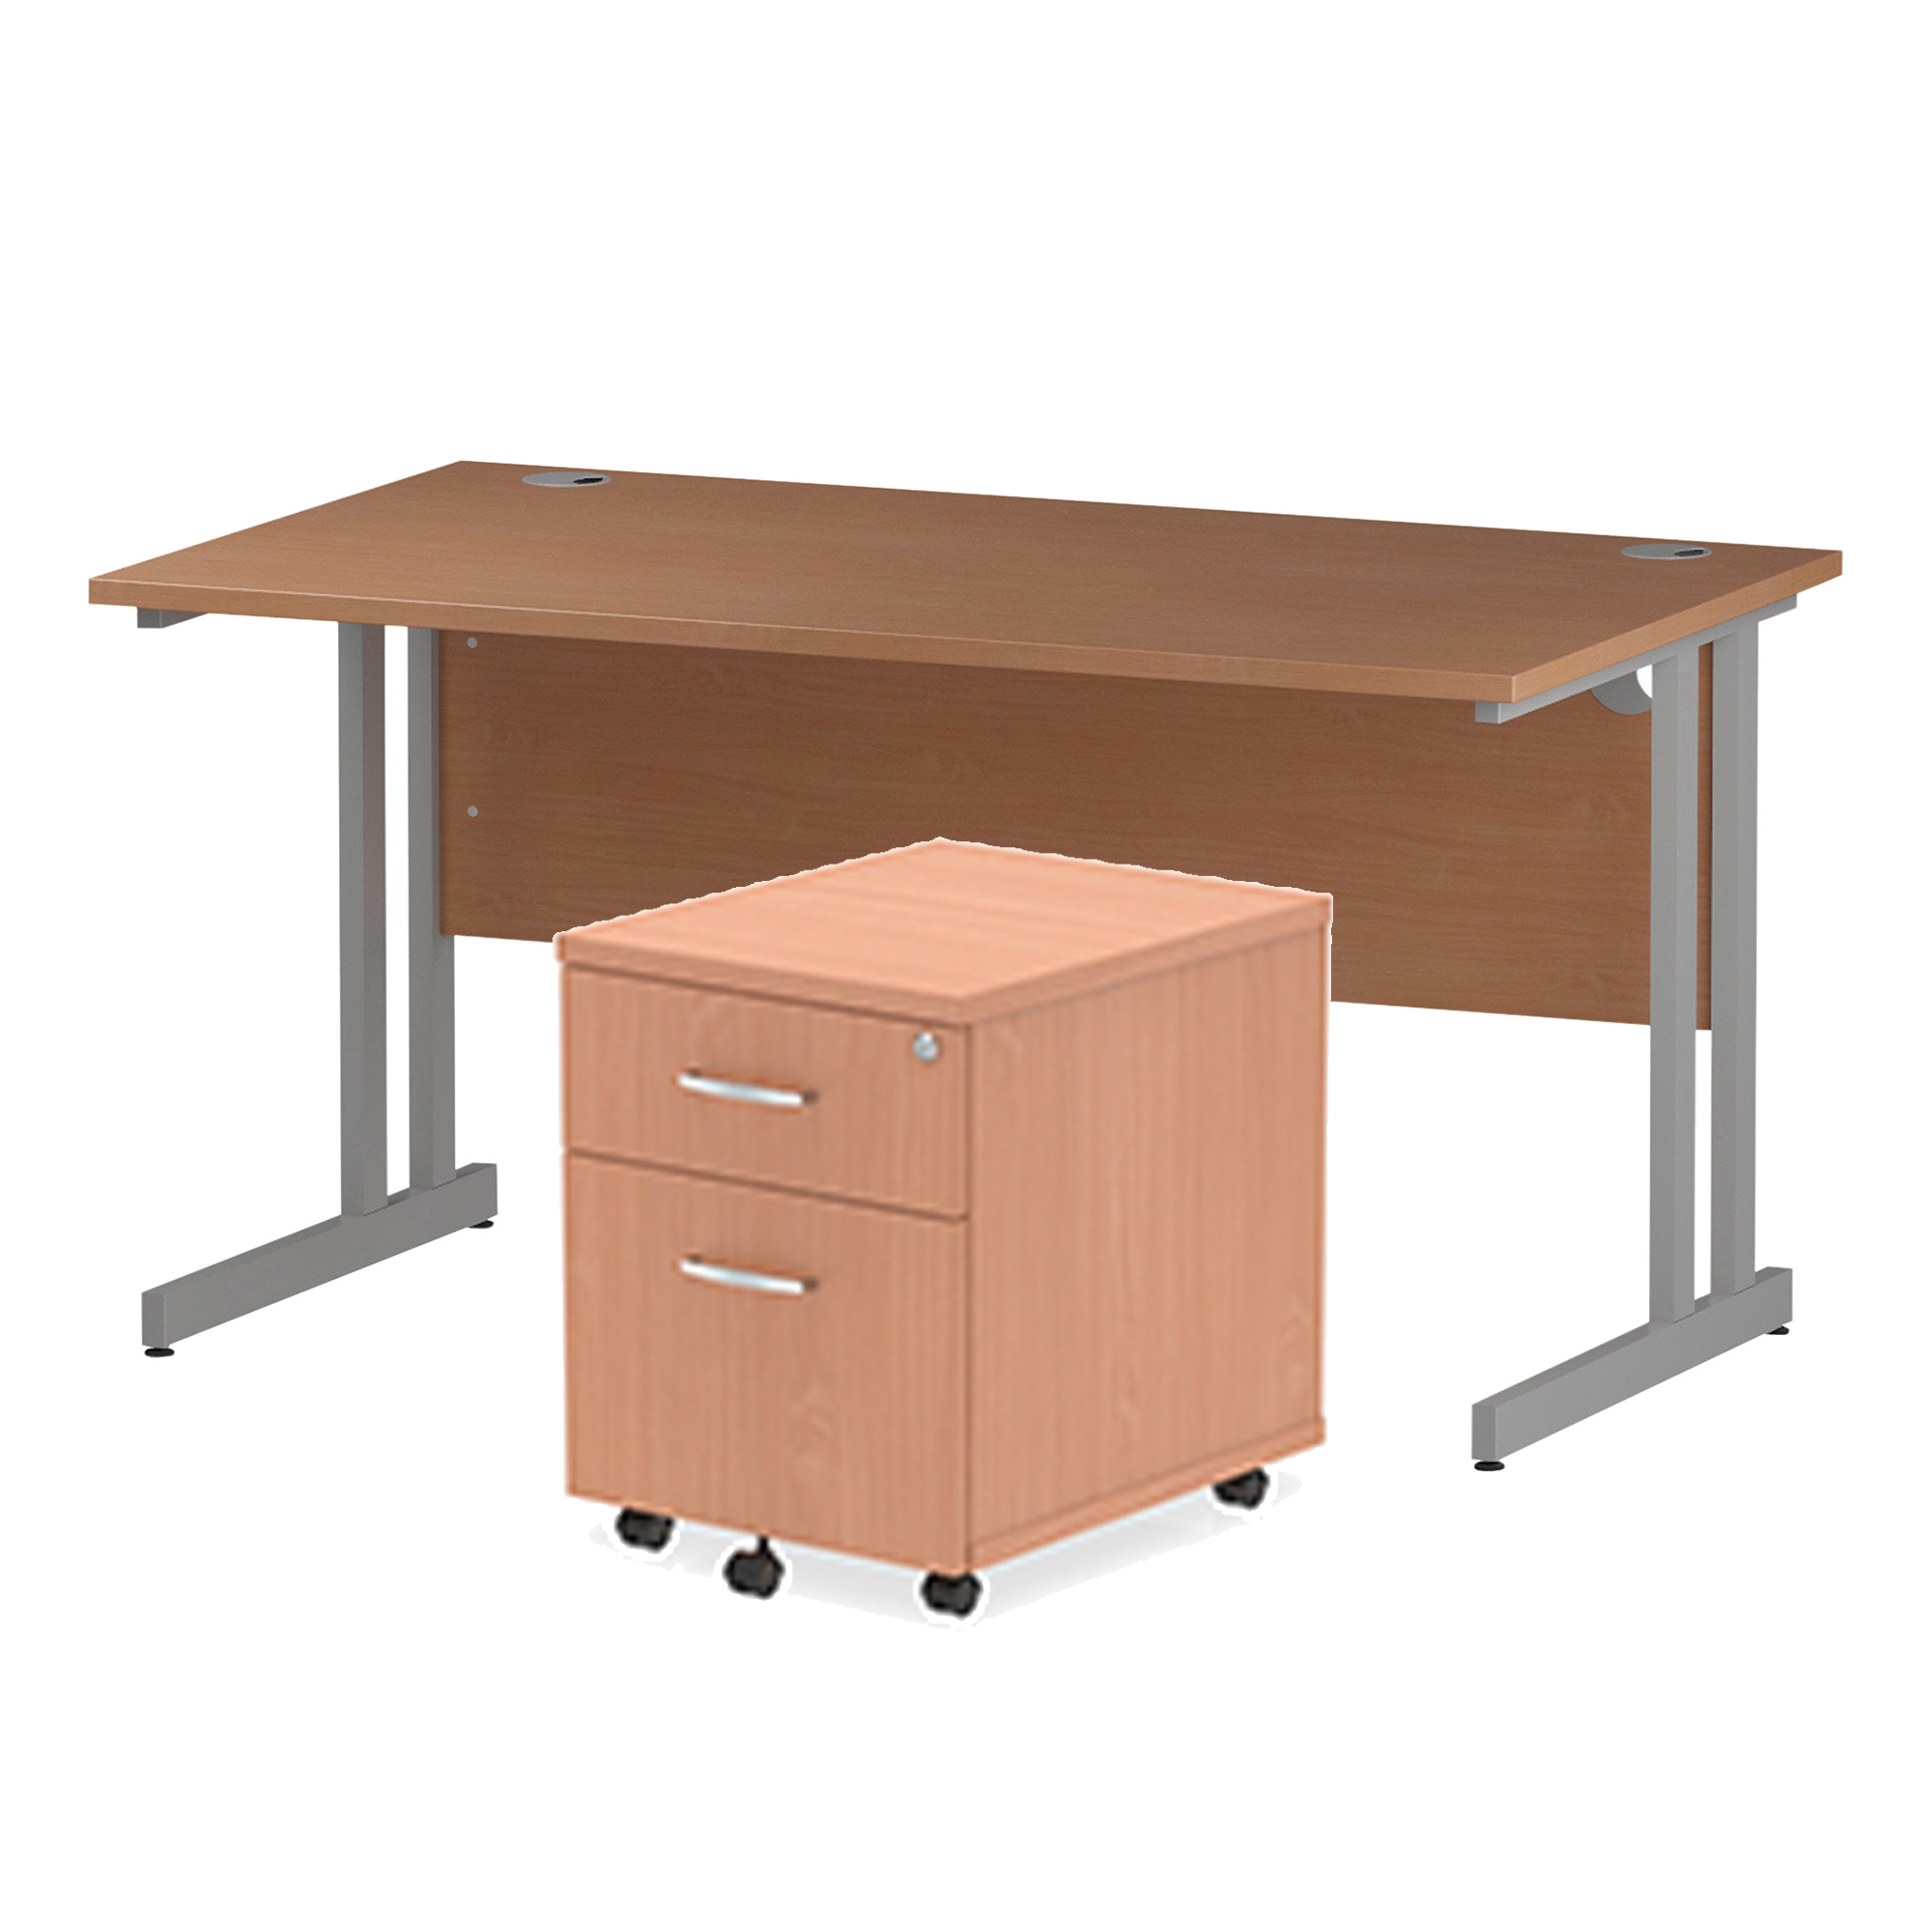 Desks Trexus Cantilever Desk 1400x800 & 2 Drawer Pedestal Beech Bundle Offer Feb-Apr 2020